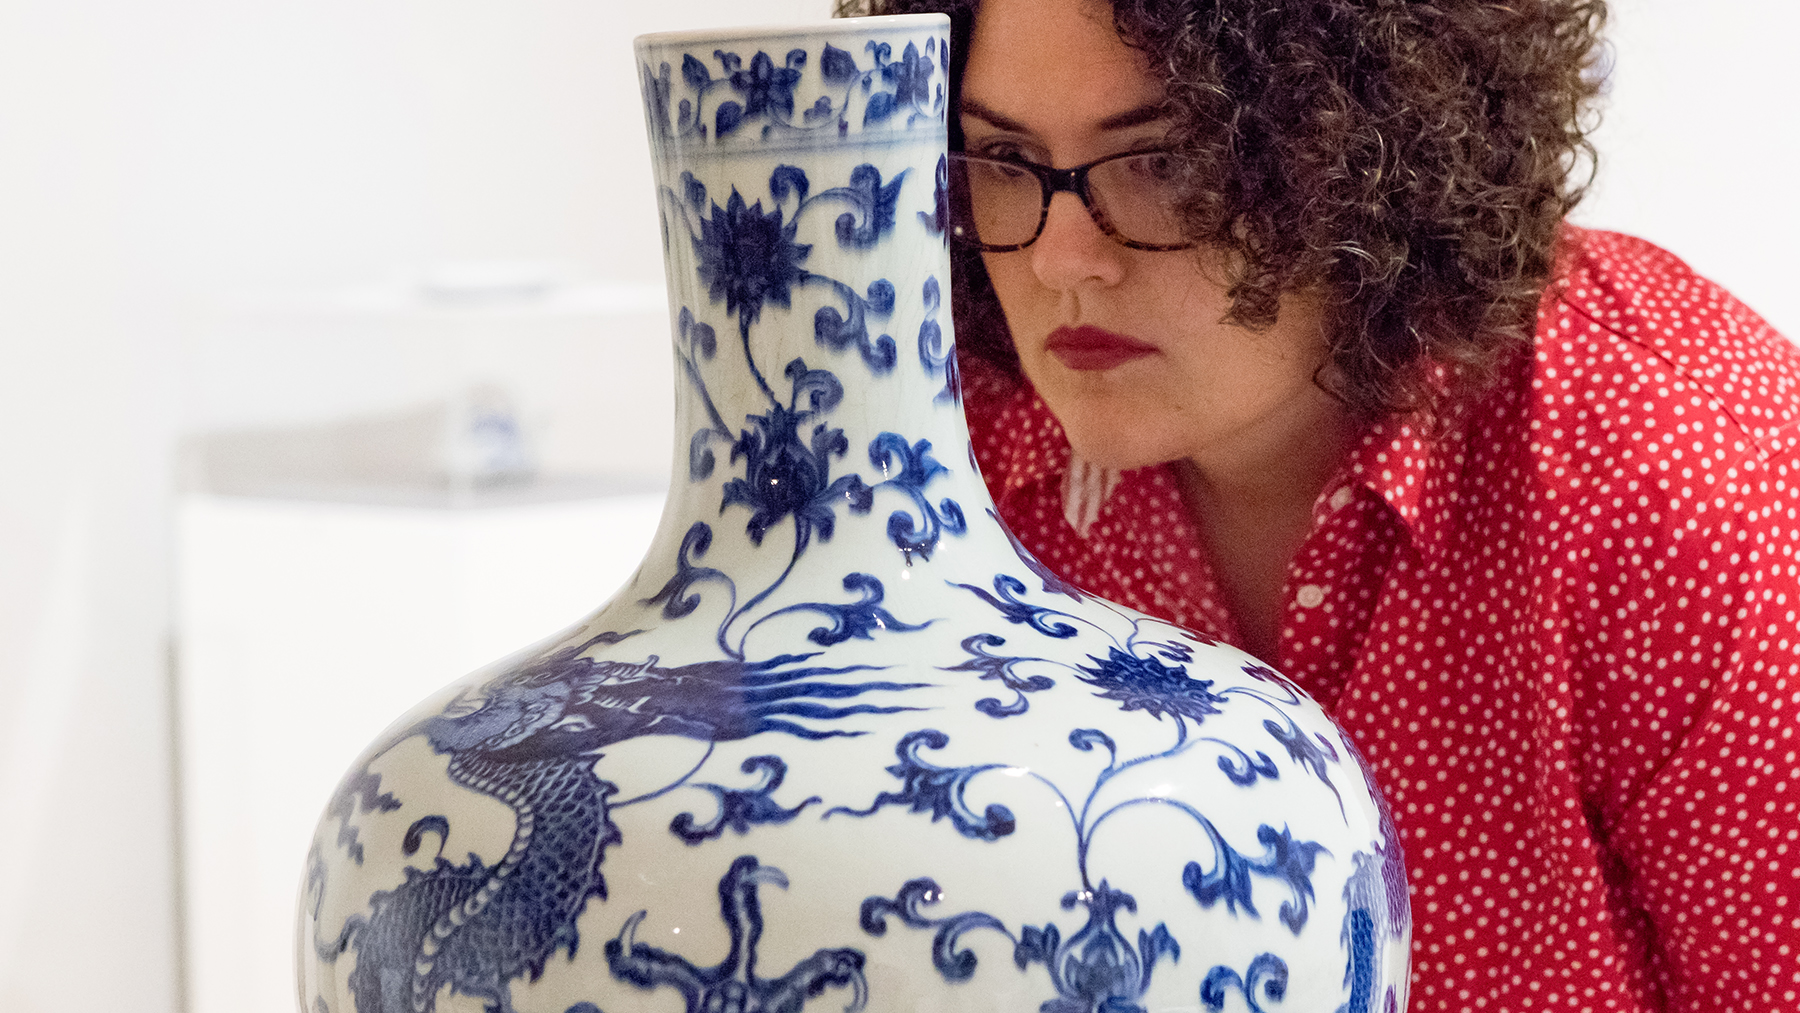 KAM curator Maureen Warren takes a close look at the vase. image by Natalie Fiol